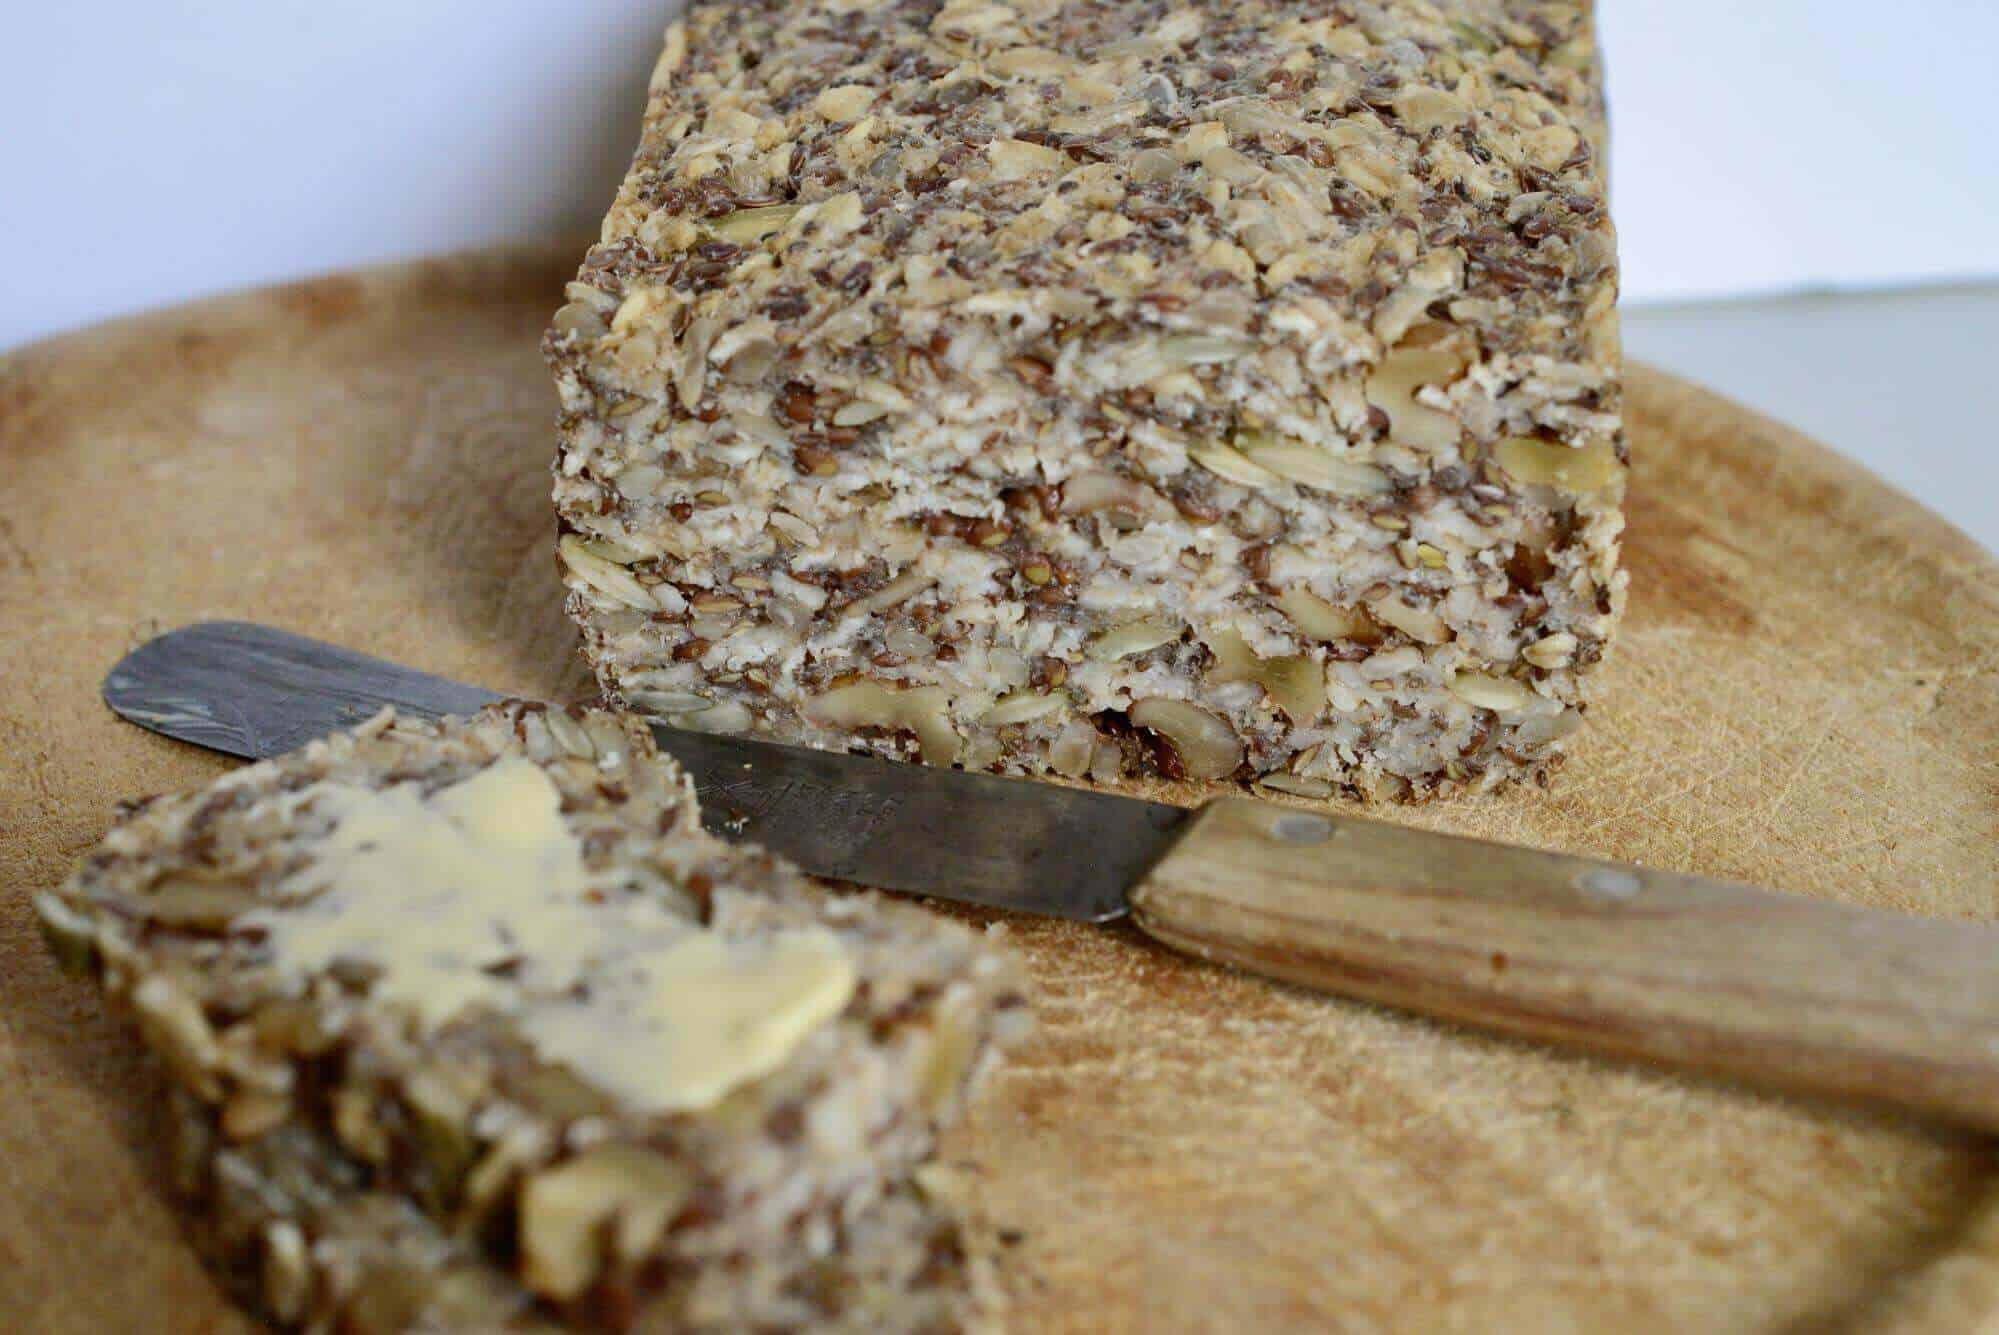 Multigrain bread with knife and butter on board